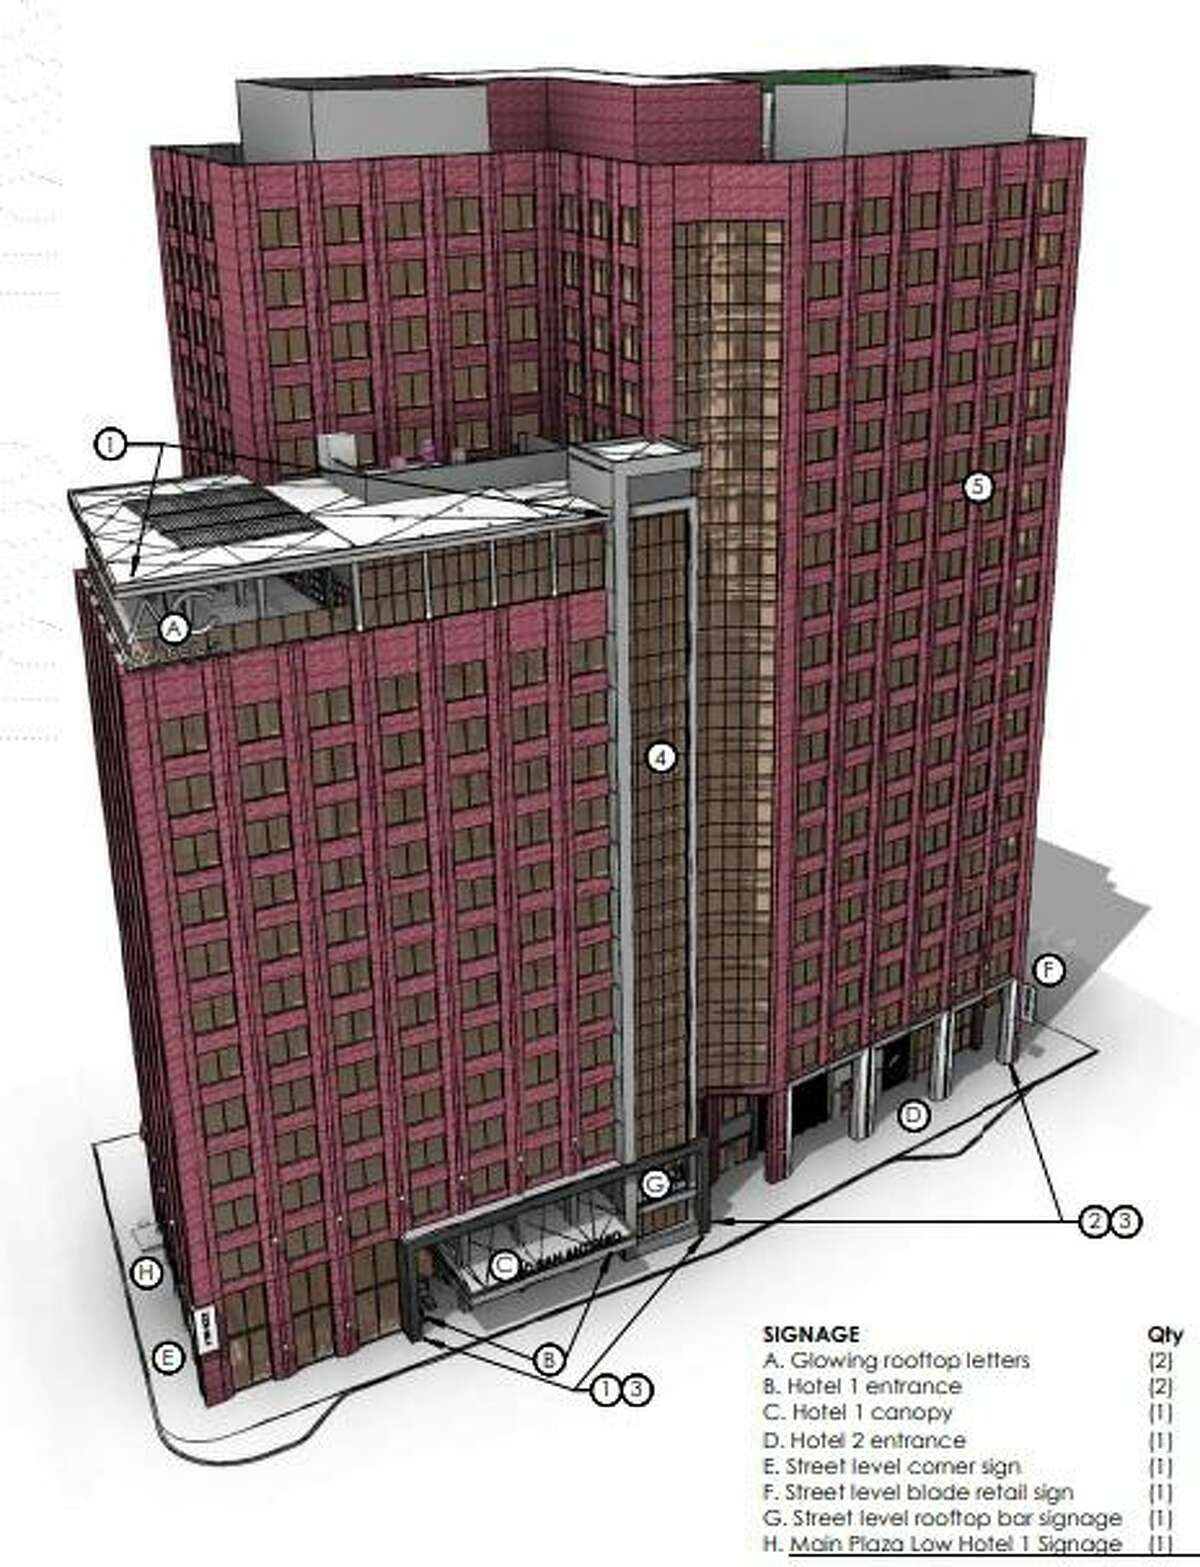 Winston Hotels plans to convert much of the 20-story Riverview Towers building downtown into a dual-branded AC Hotel by Marriott and an Element Hotel by Westin.